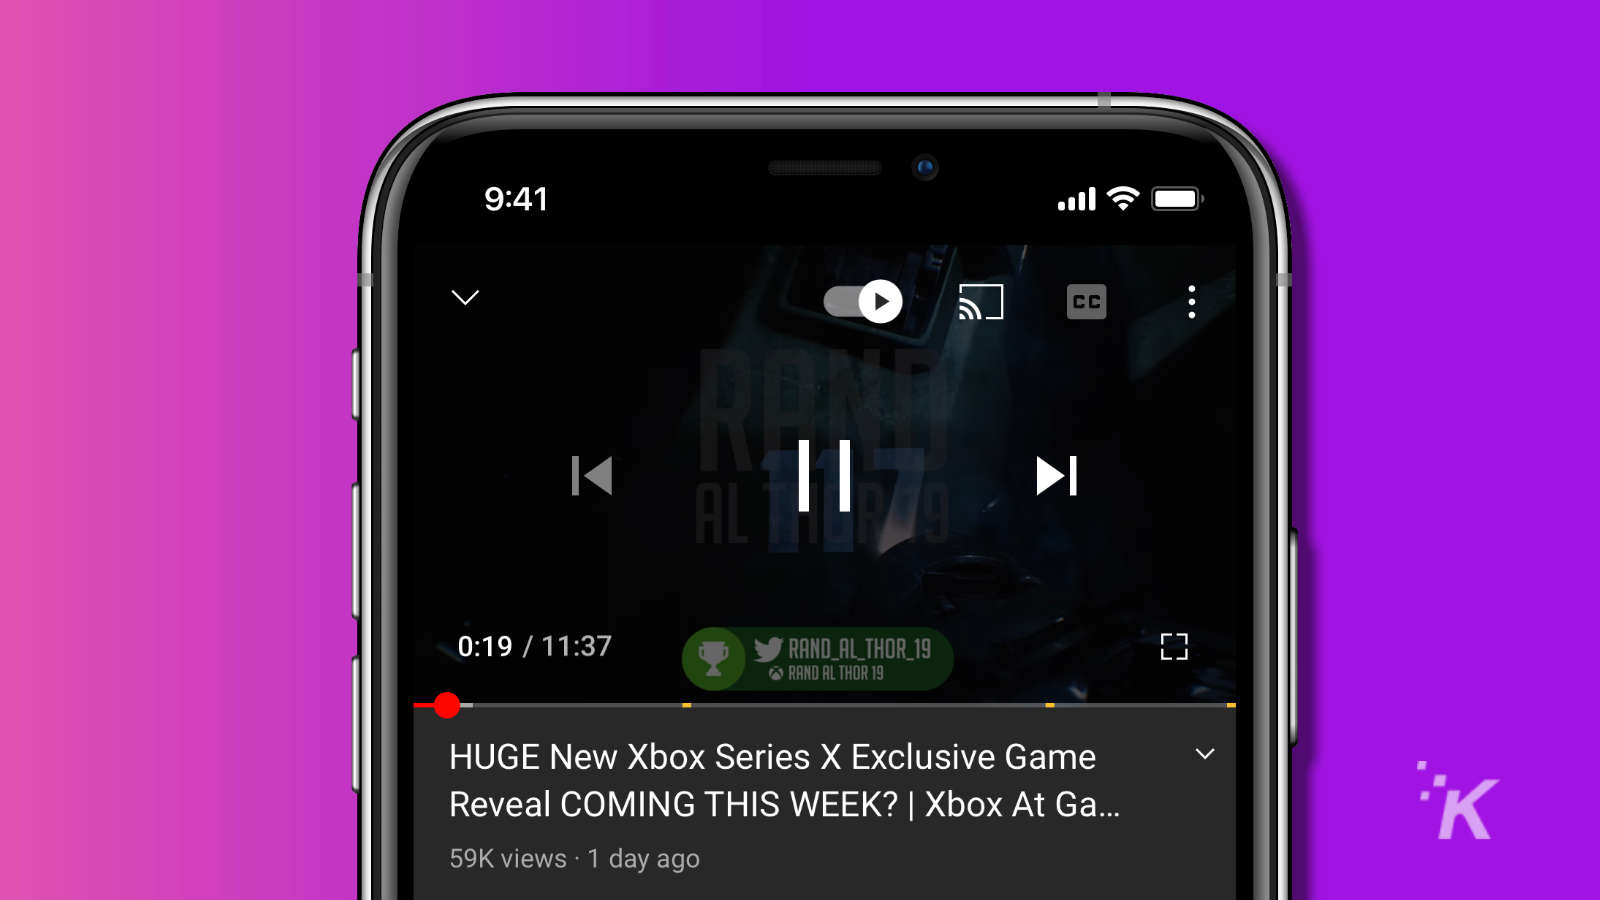 youtube app onscreen controls including closed captioning